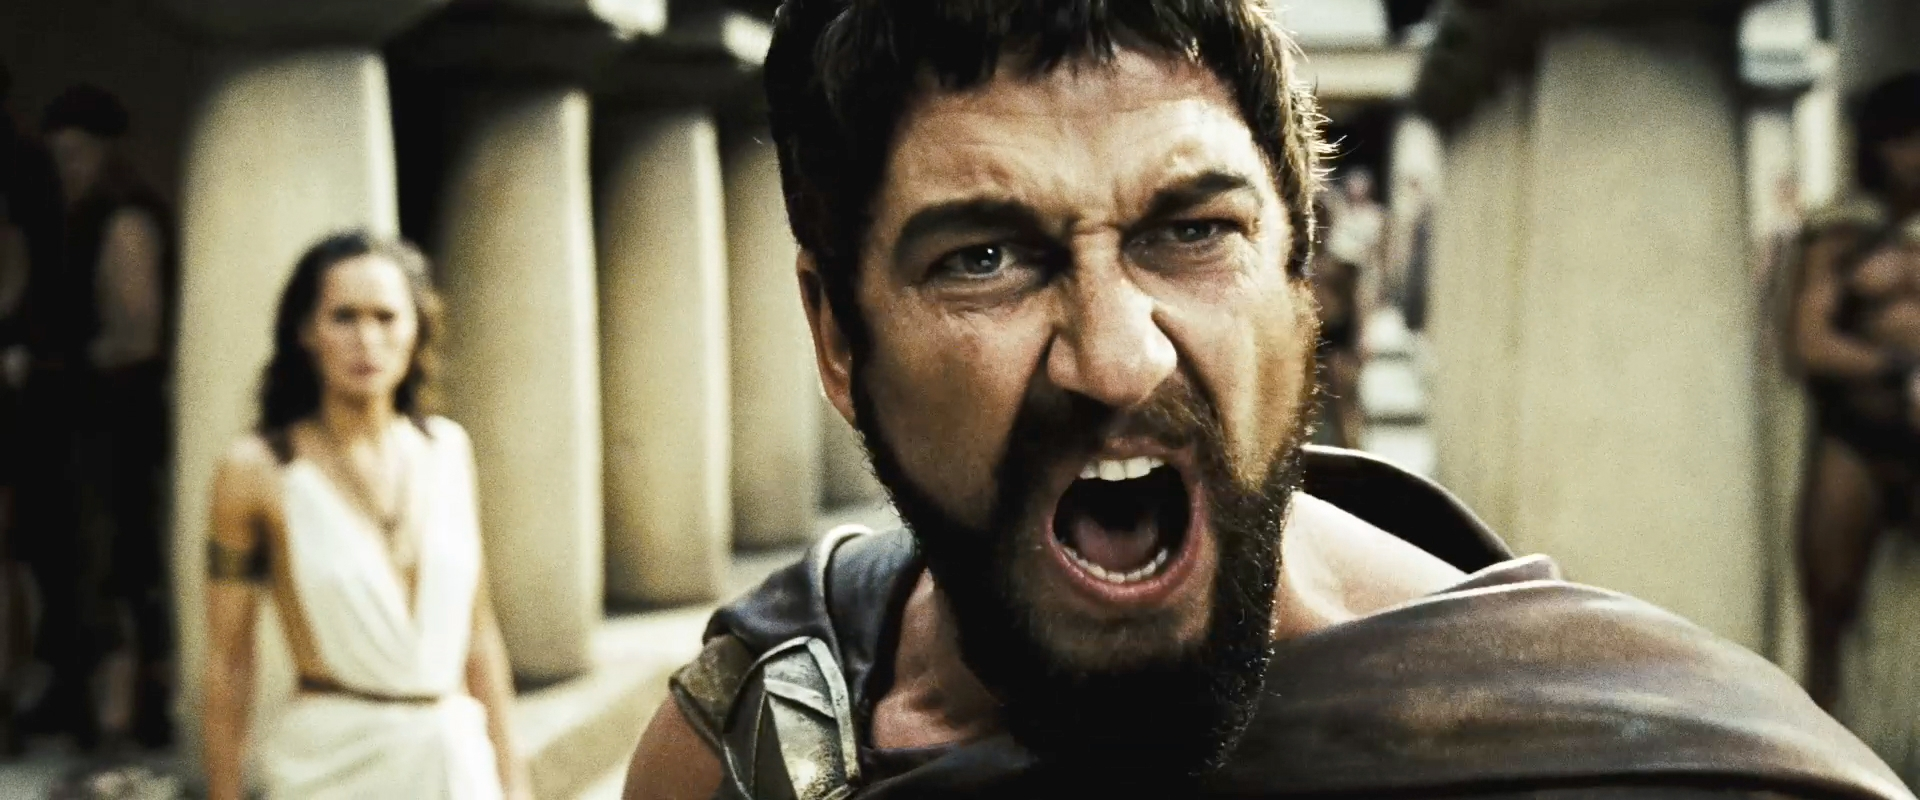 u201cThis is madness!u201d u201cMadness? THIS IS SPARTA!u201d